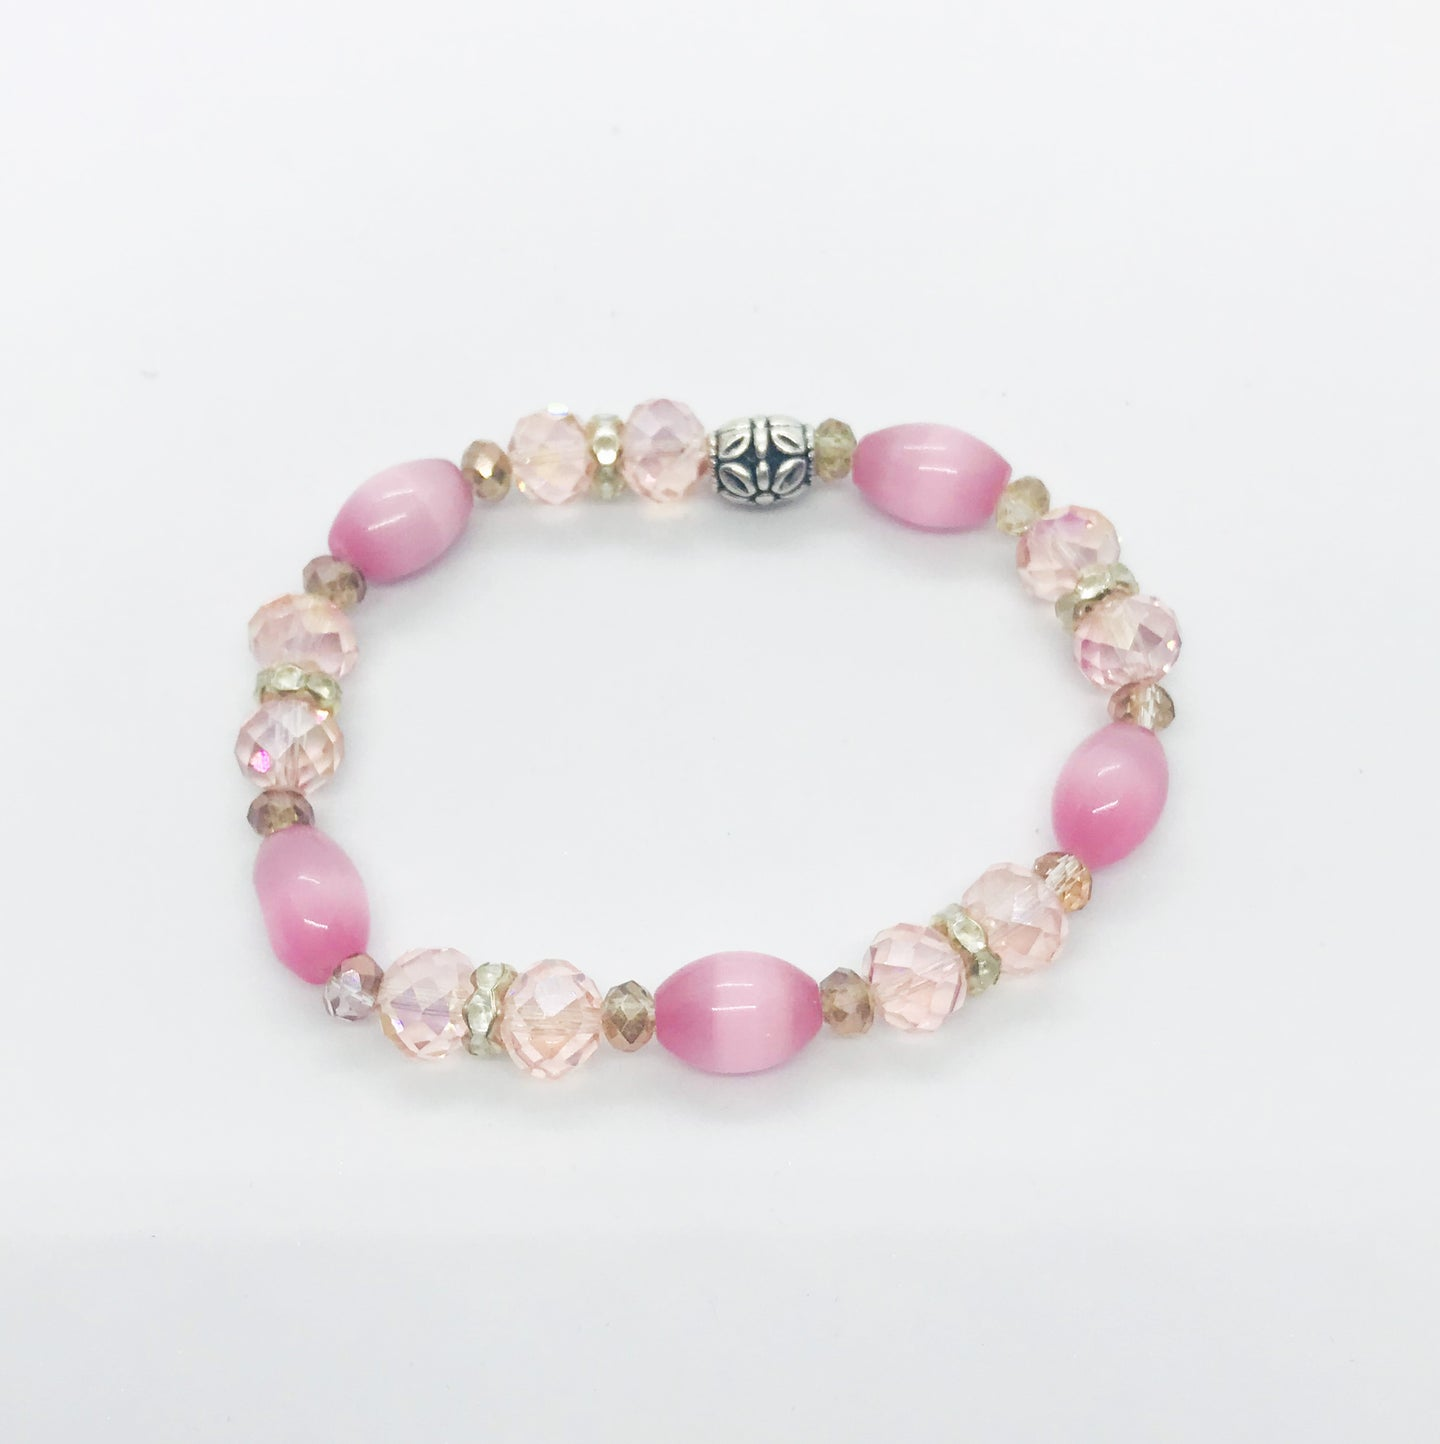 Glass Bead Stretchy Bracelet - B403